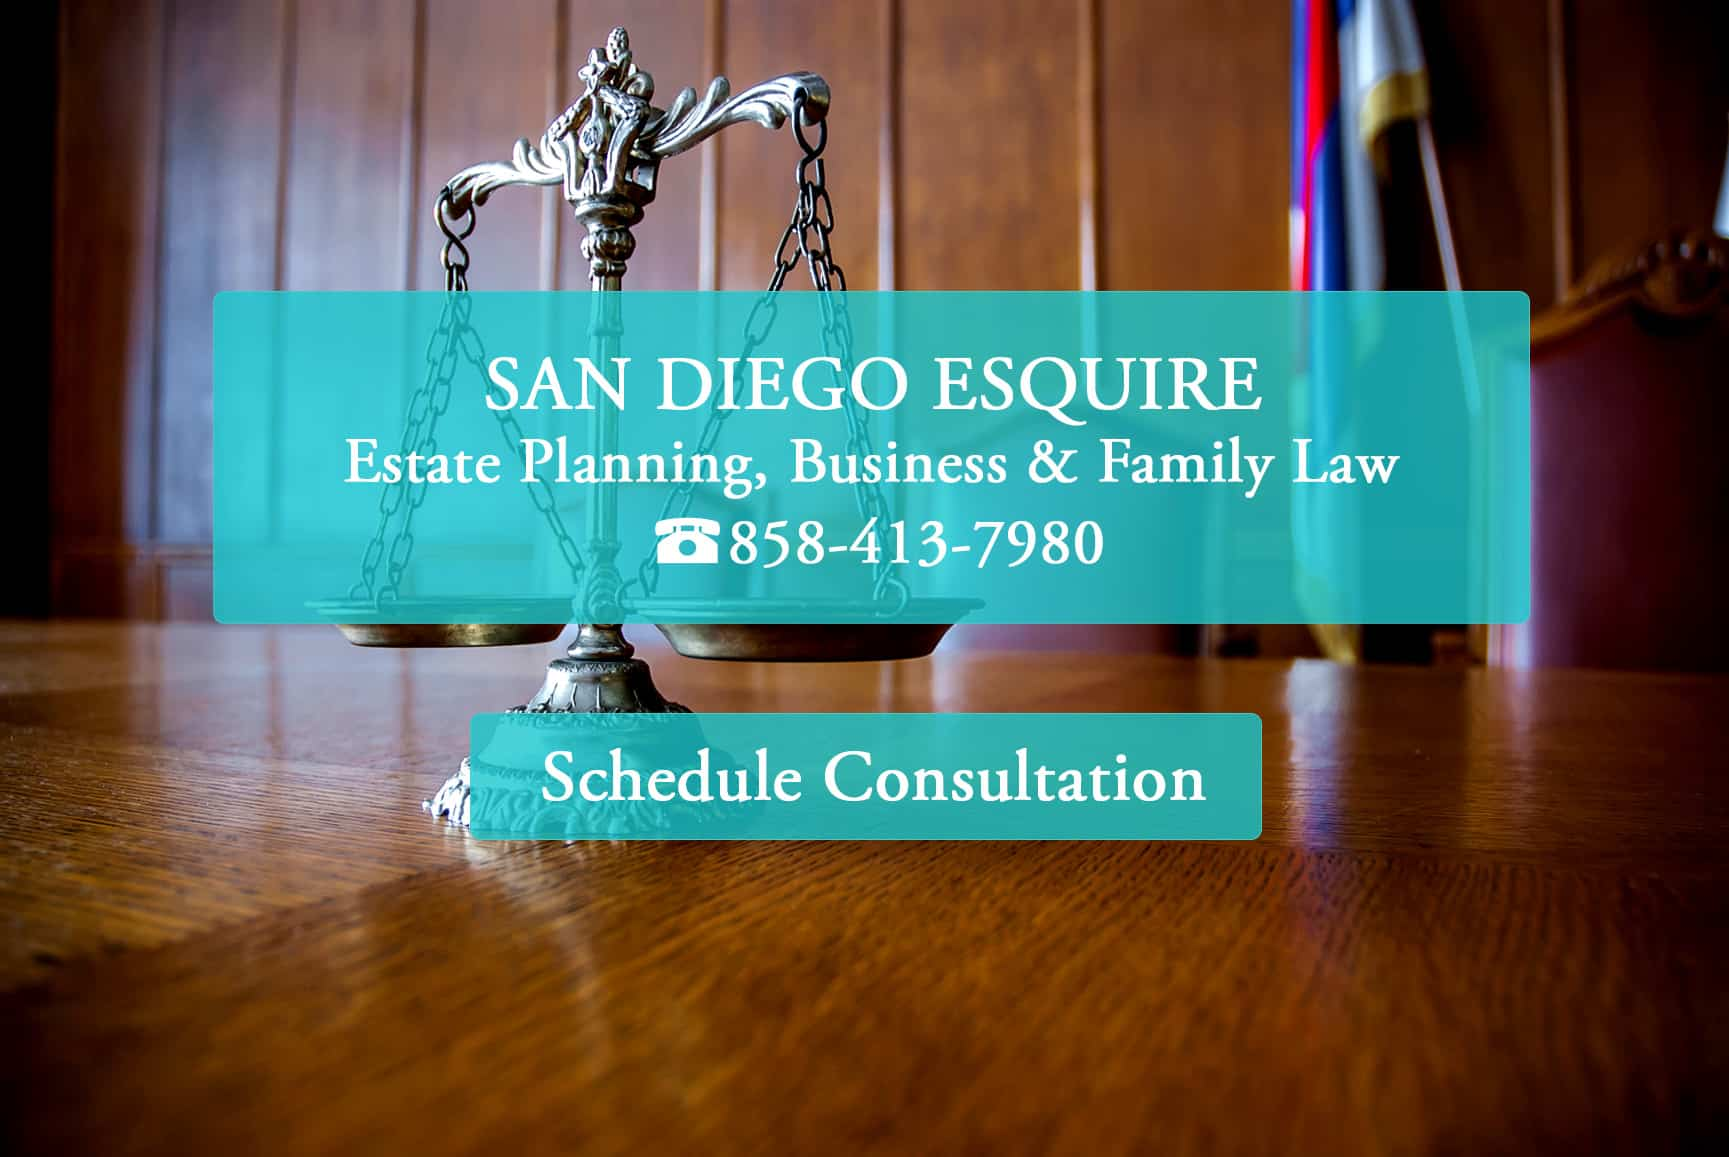 San Diego Esquire home page - Estate Planning, Business & Family Law